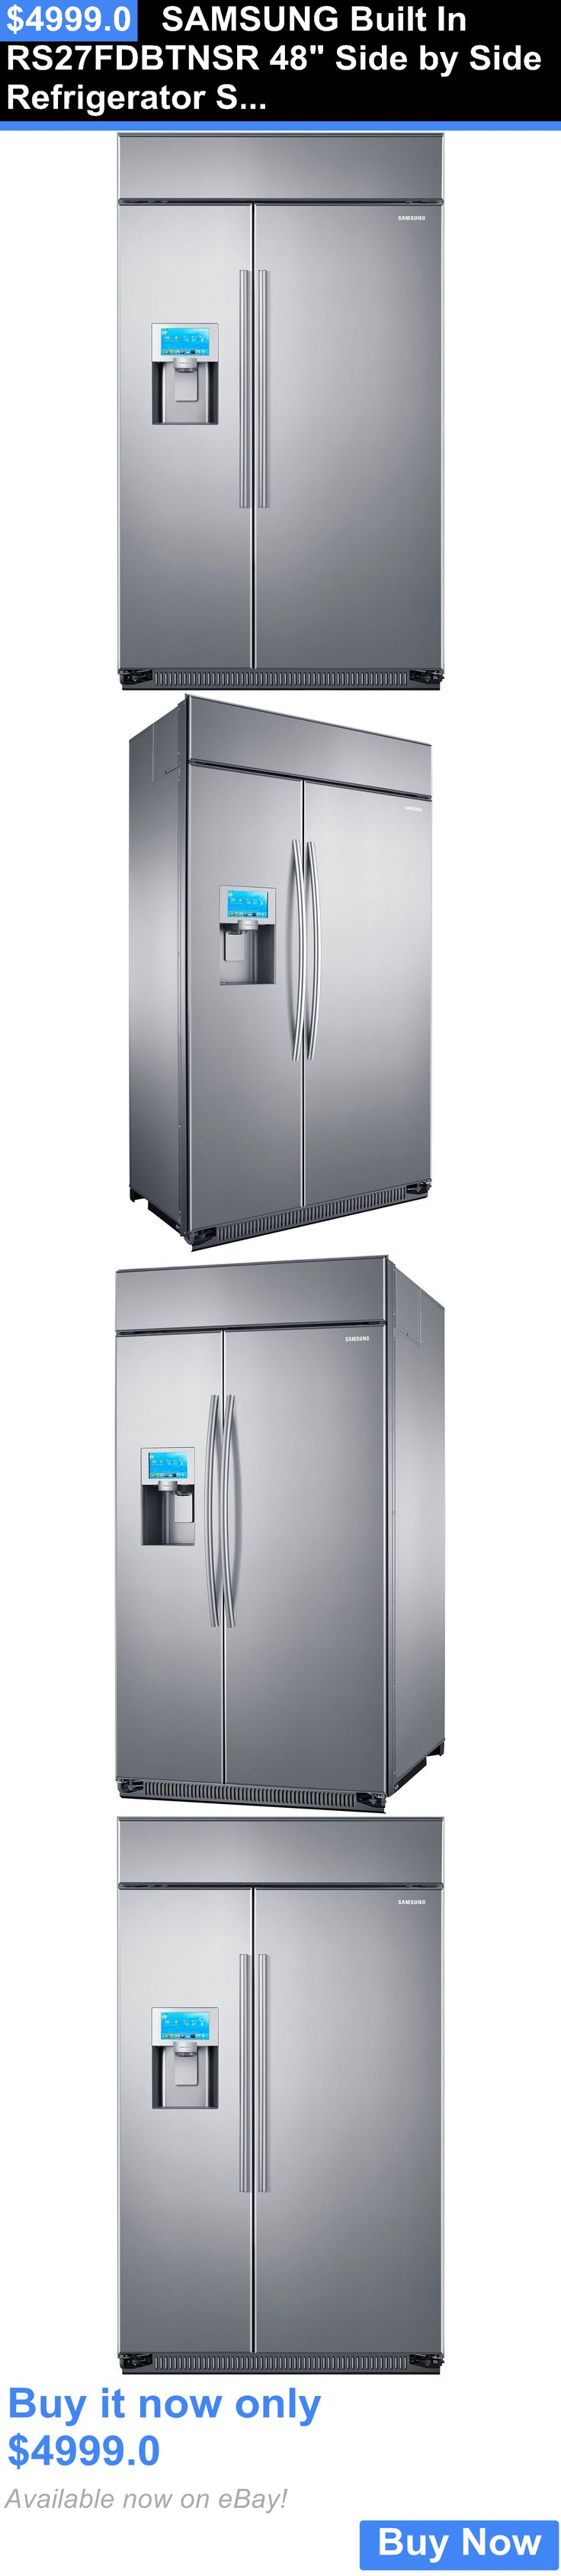 15 best Stainless Steele Refrigerator images on Pinterest